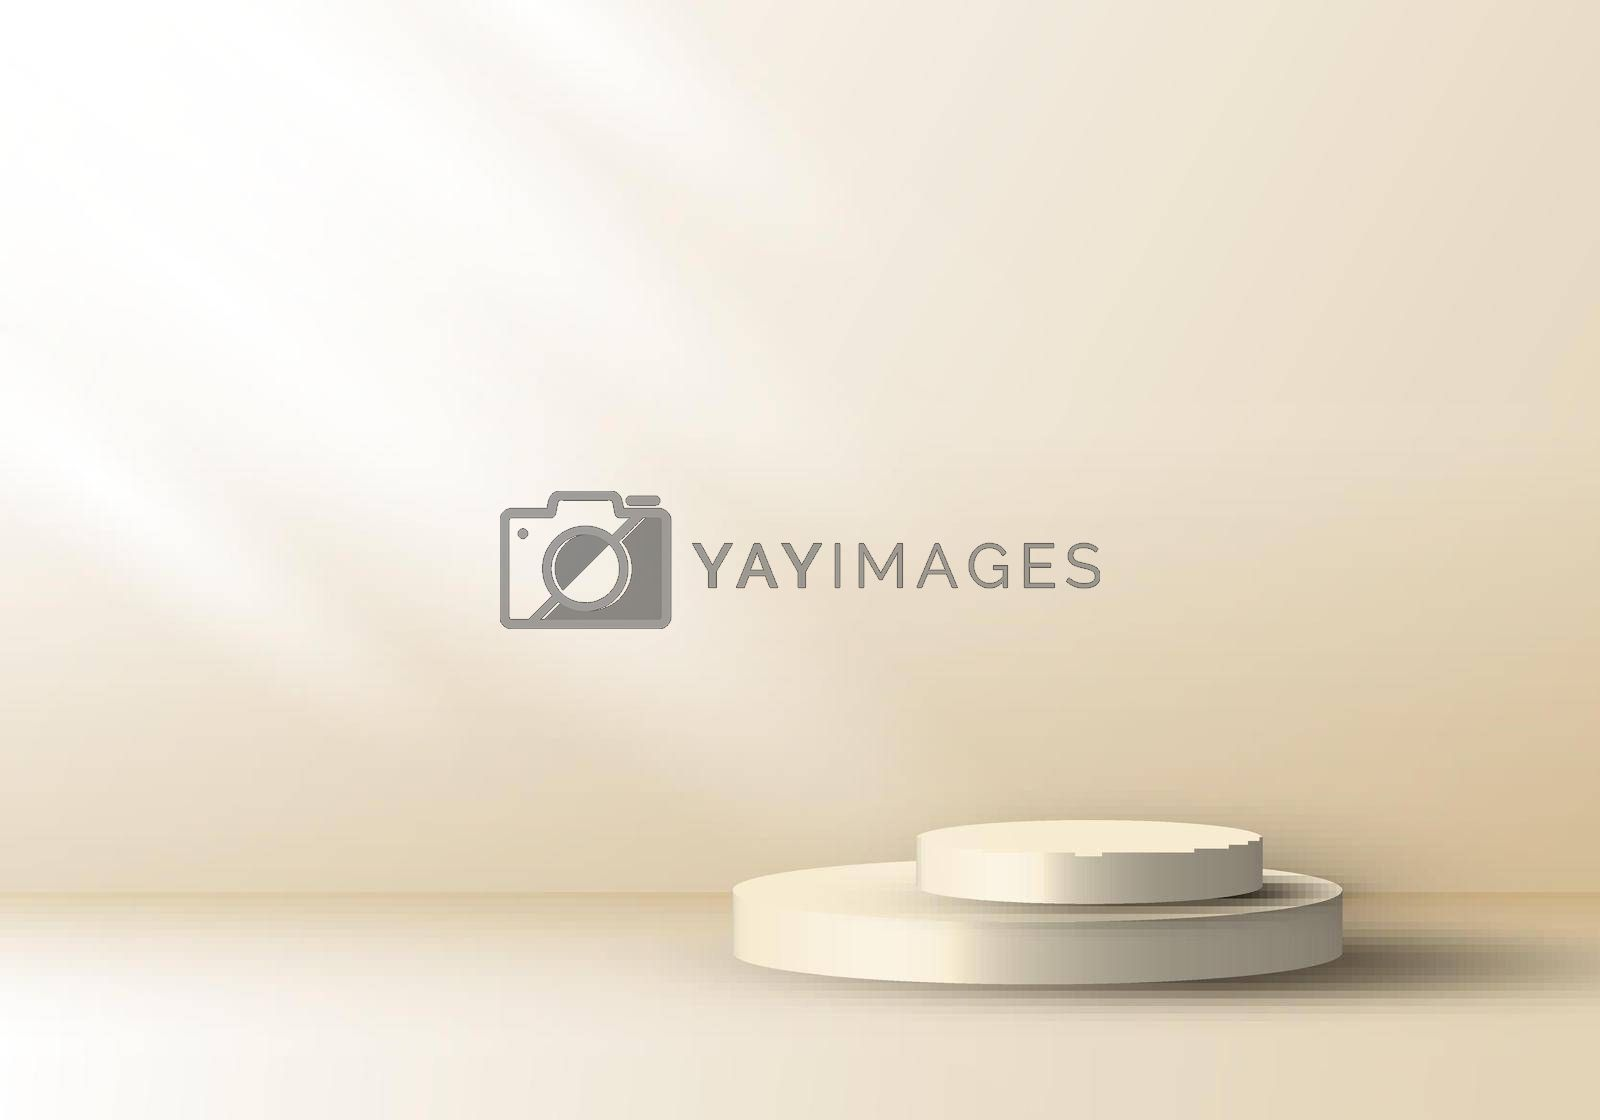 Royalty free image of 3D realistic cream color geometric round shape stacked podium with side lighting mockup minimal scene background by phochi